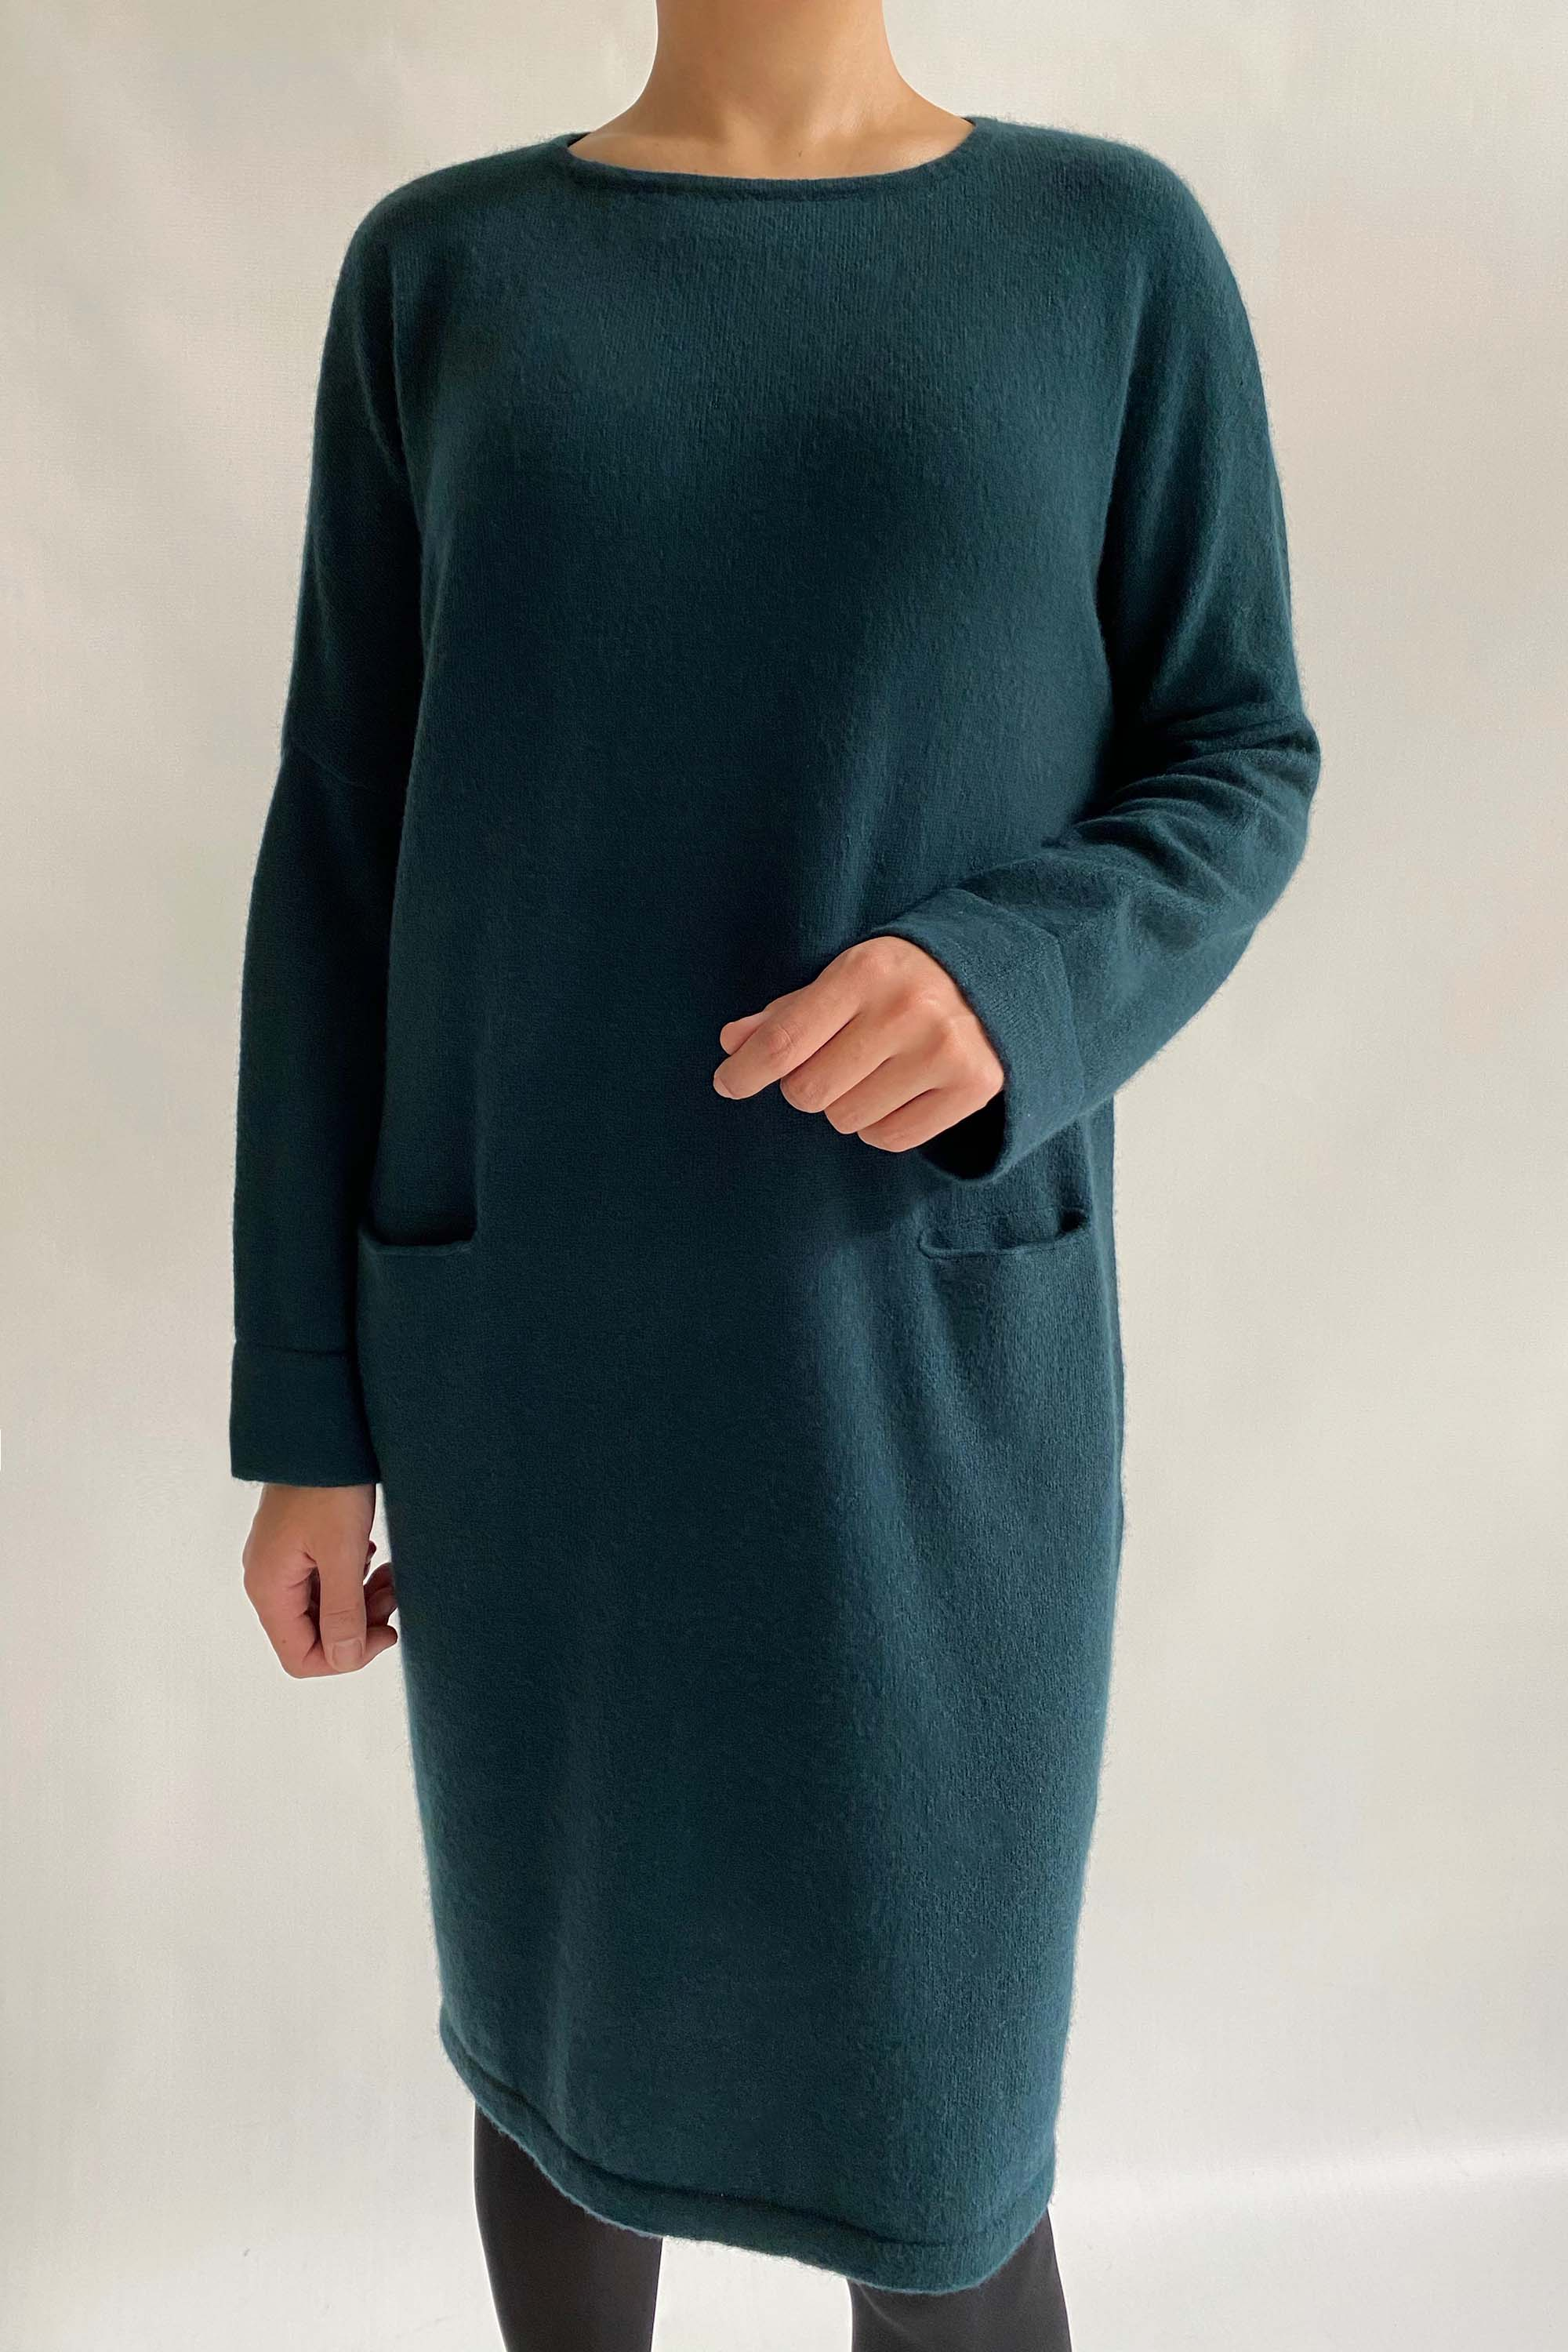 Cashmere drop shoulder knitted dress in bottle green